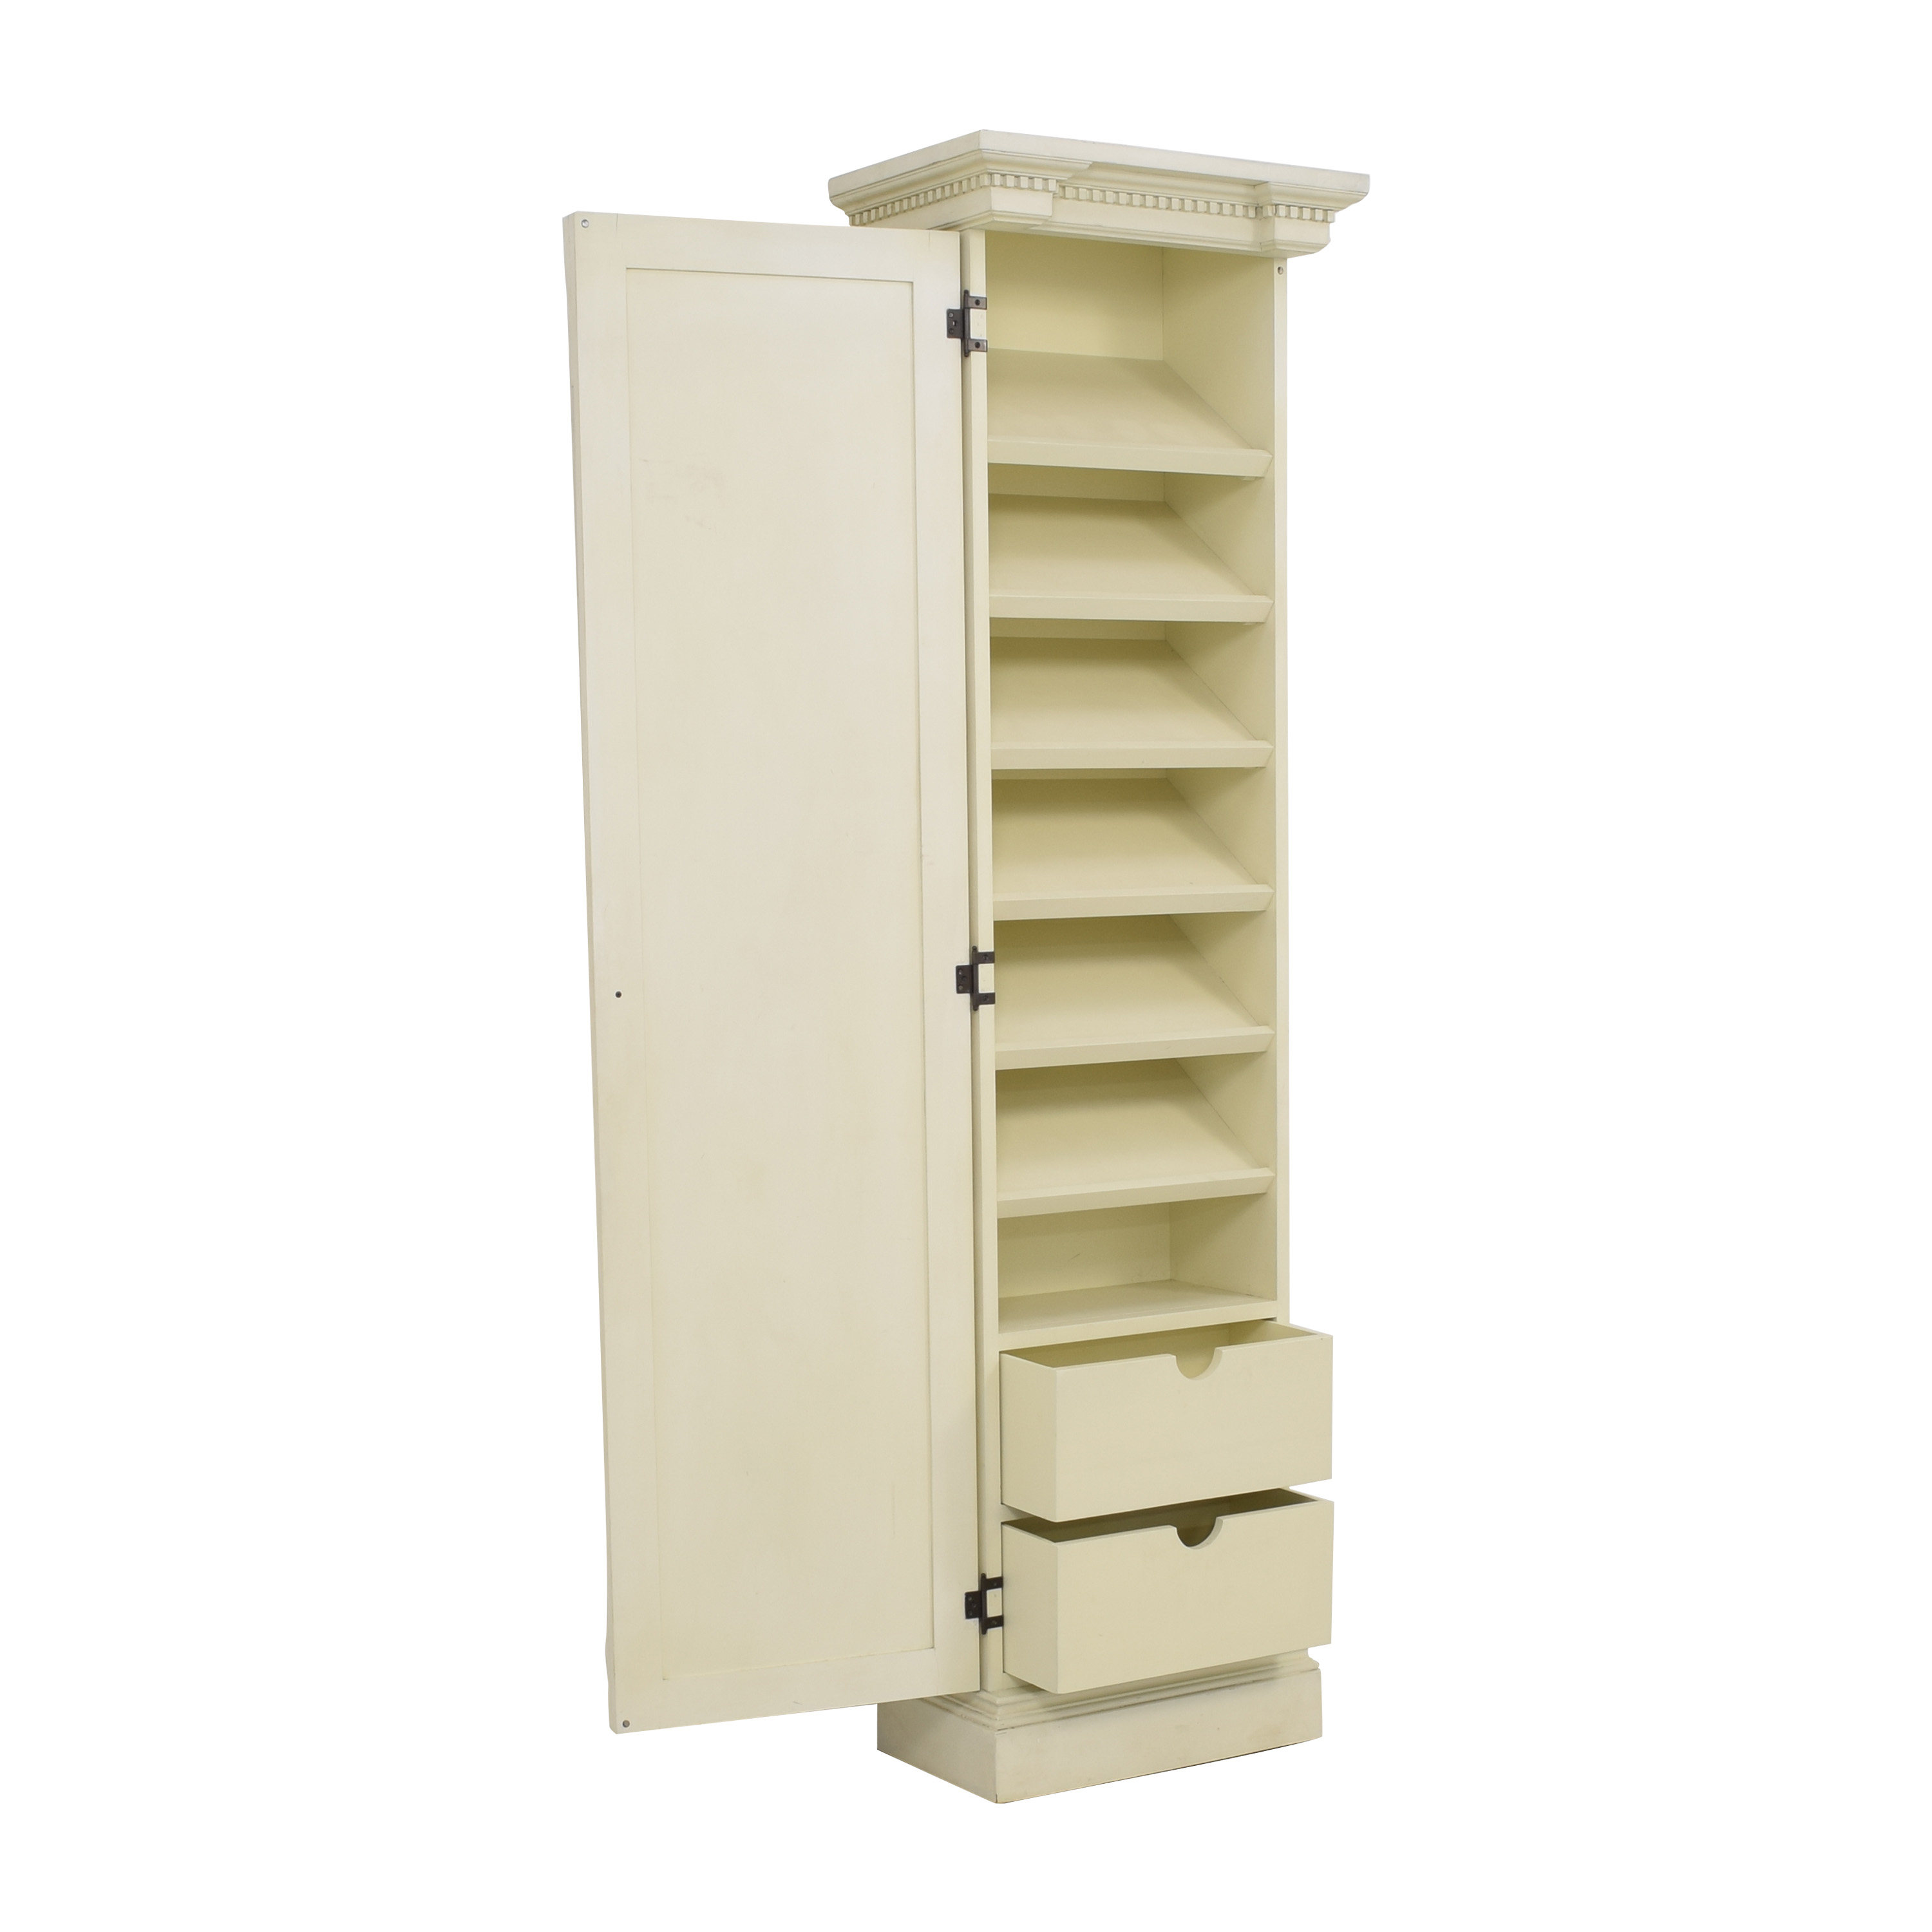 Restoration Hardware Restoration Hardware St. James Shoe Tower for sale